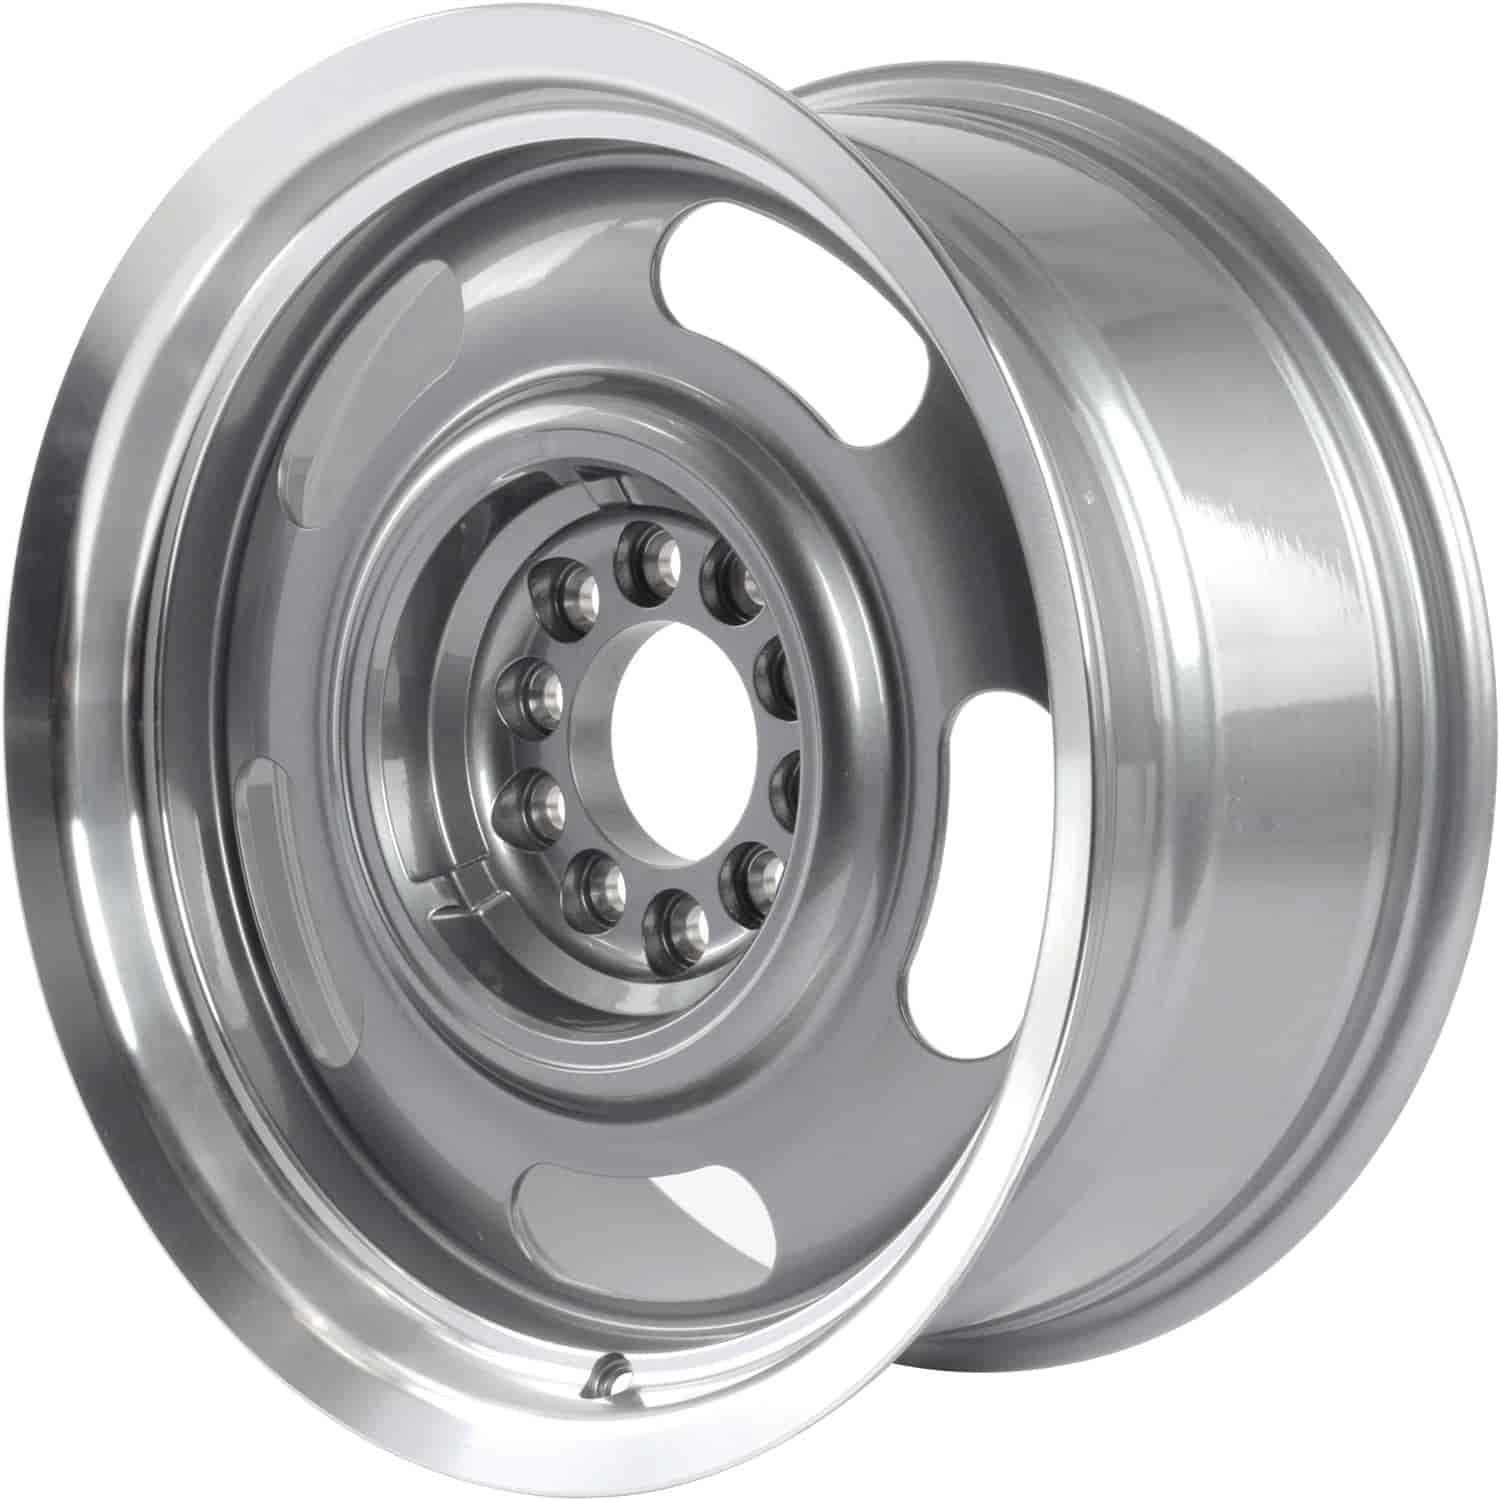 JEGS Performance Products Rally Wheel Diameter x Width 17